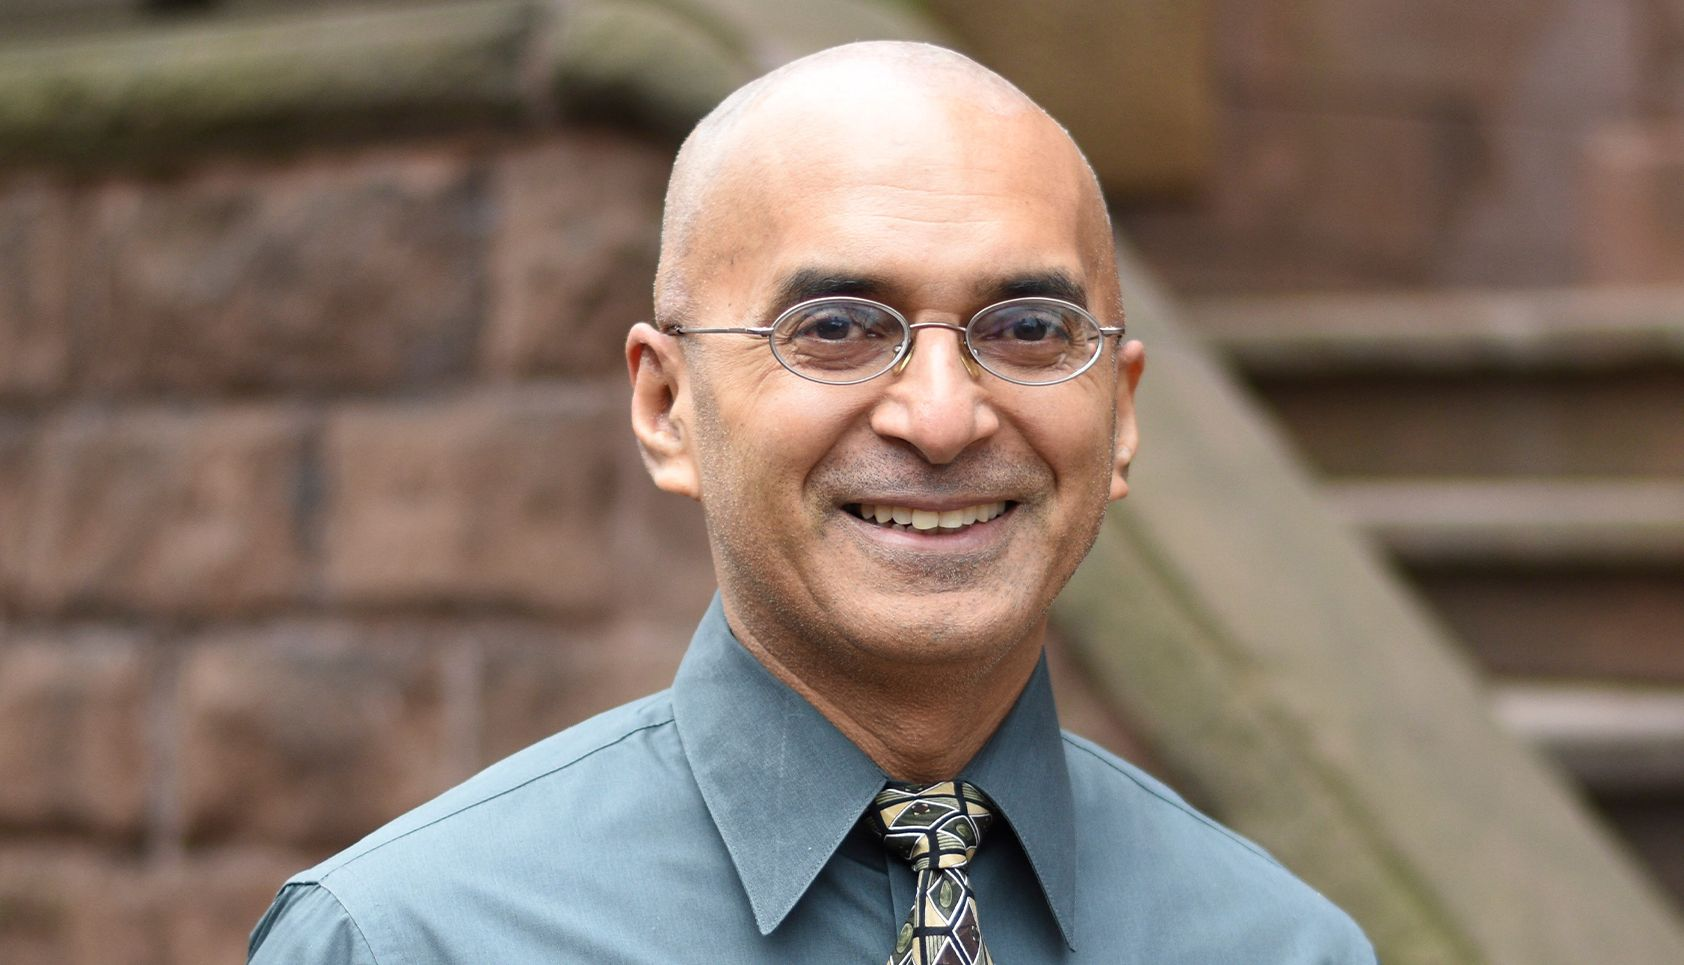 Franklin Heerasingh is a Licensed Real Estate Salesperson at HomeDax Real Estate based in NYC. Contact Franklin today to discuss your sale, purchase or rental needs.